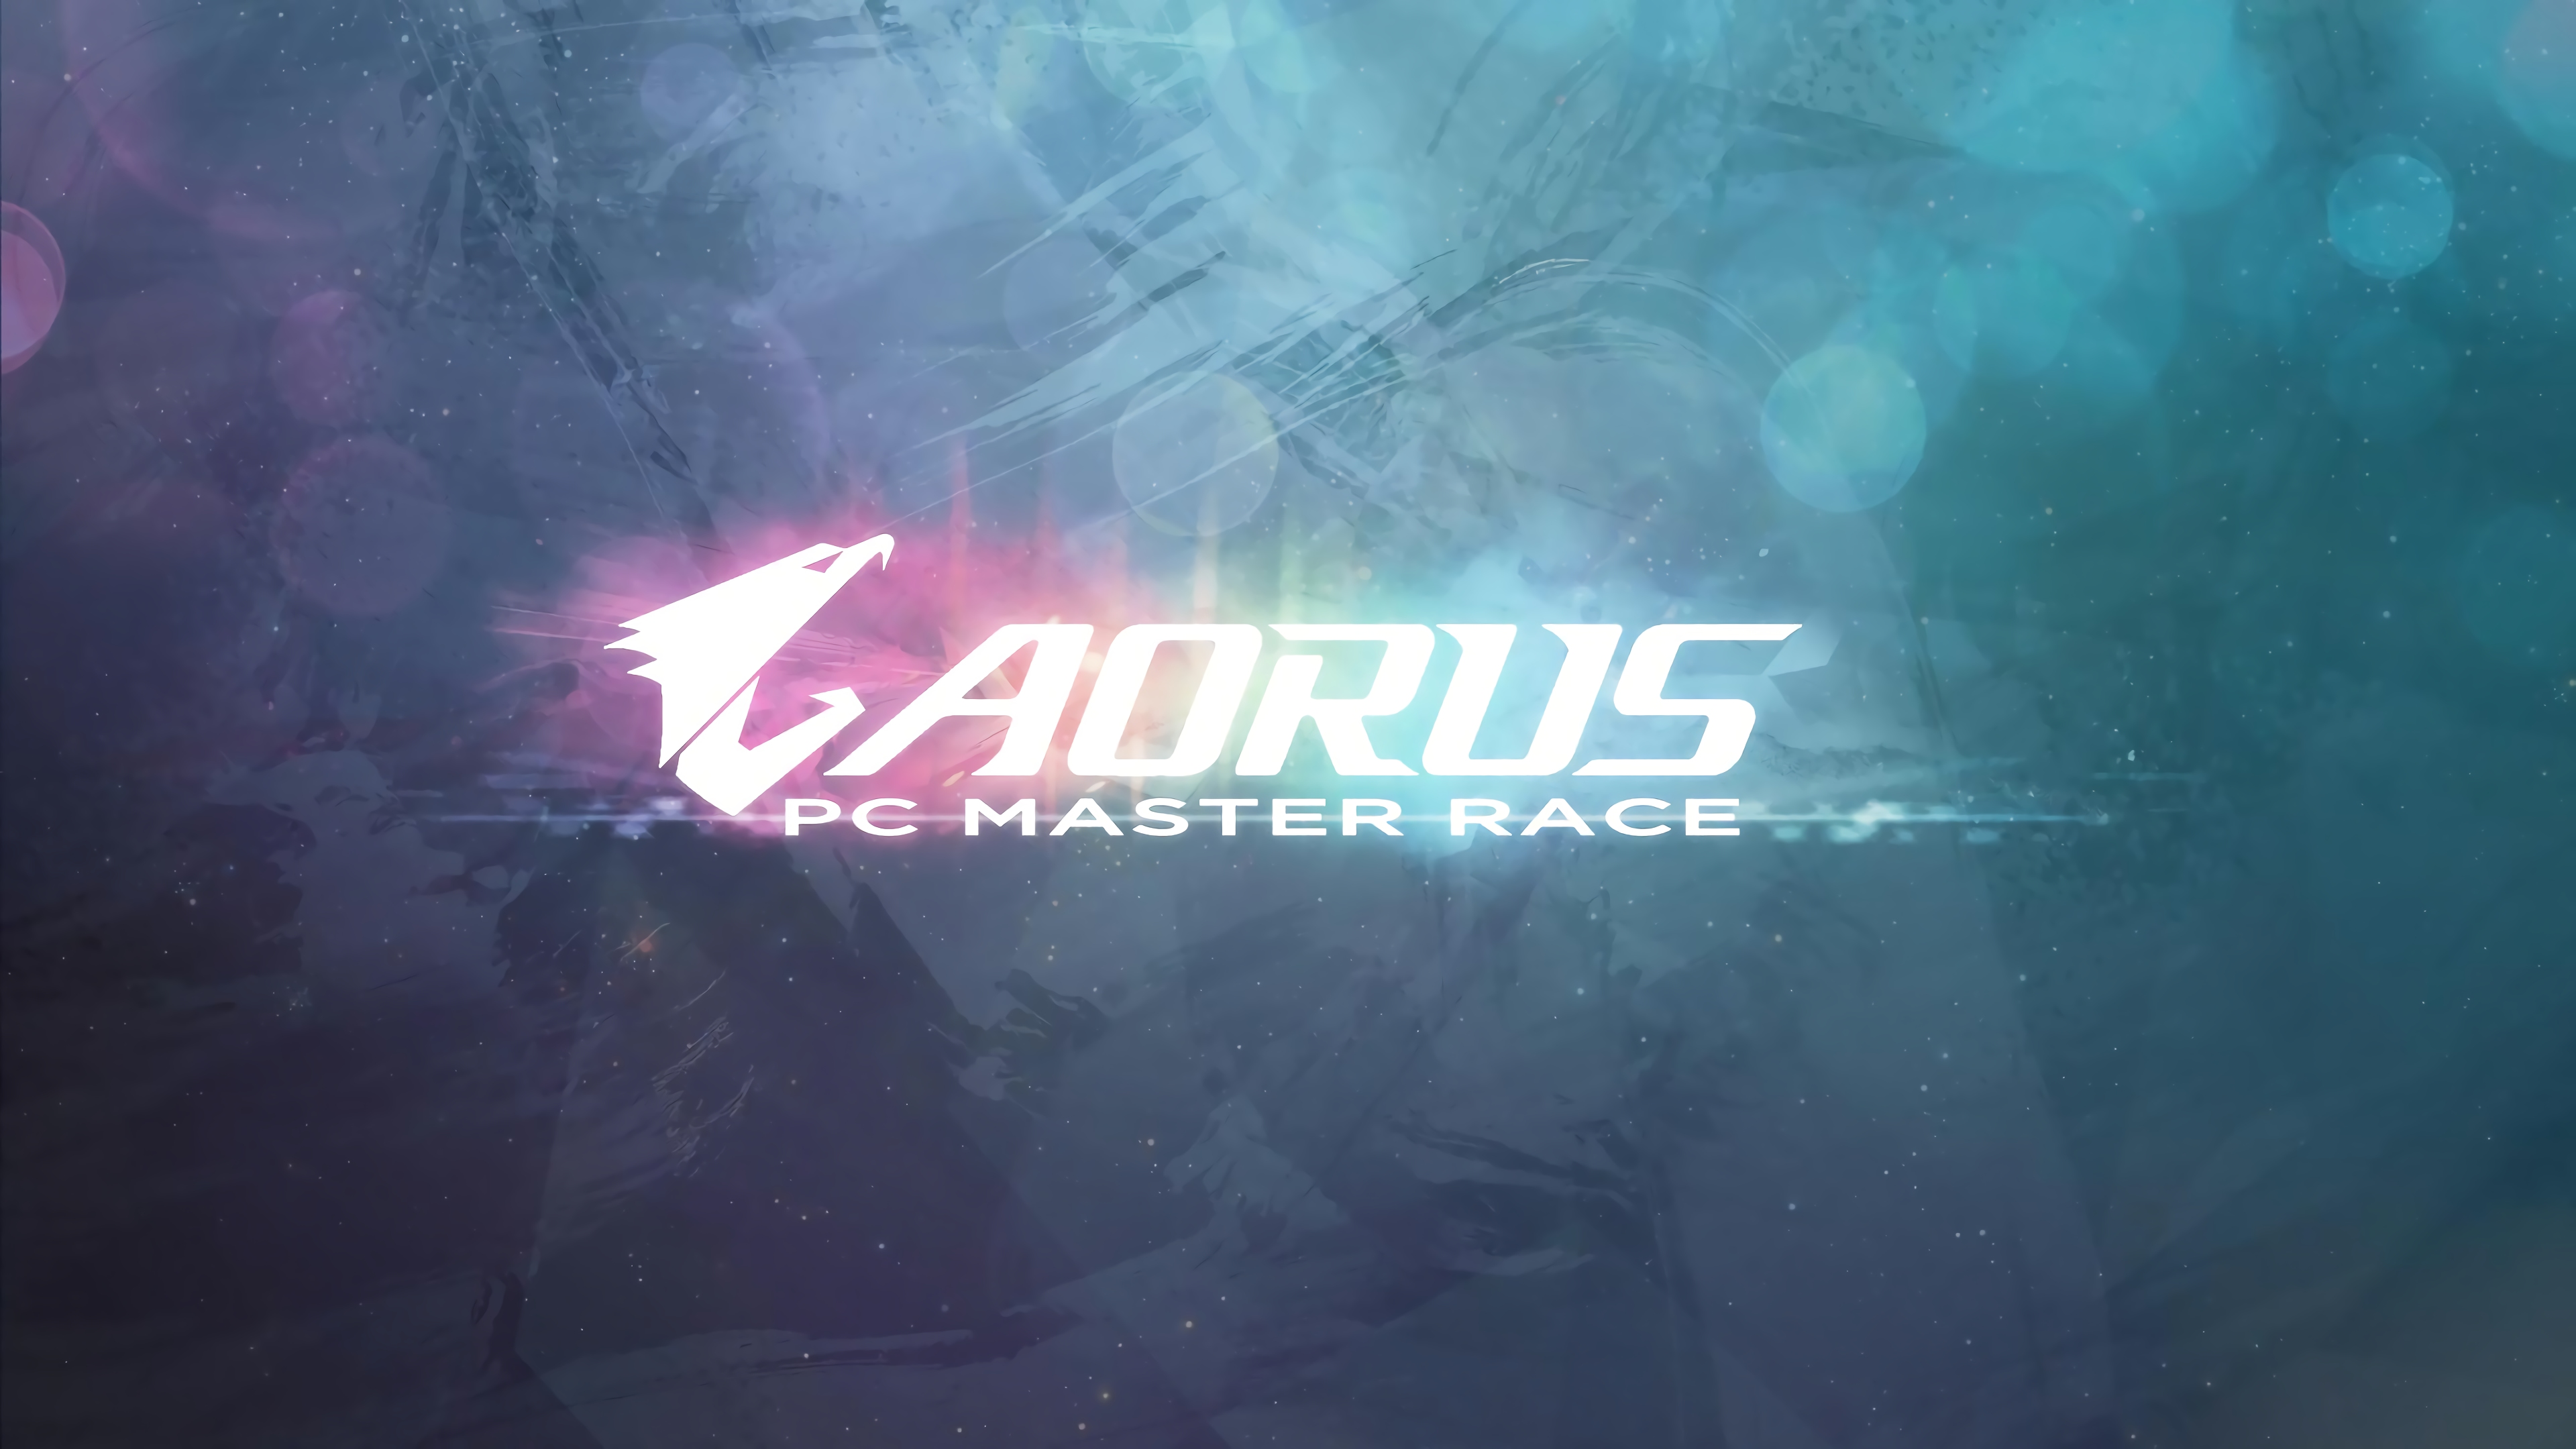 Free Download Aorus Brand Wallpaper Hd 3840x2160 For Your Desktop Mobile Tablet Explore 83 Pc Master Race Wallpapers Pc Master Race Wallpaper Pc Master Race Wallpapers Race Car Wallpapers